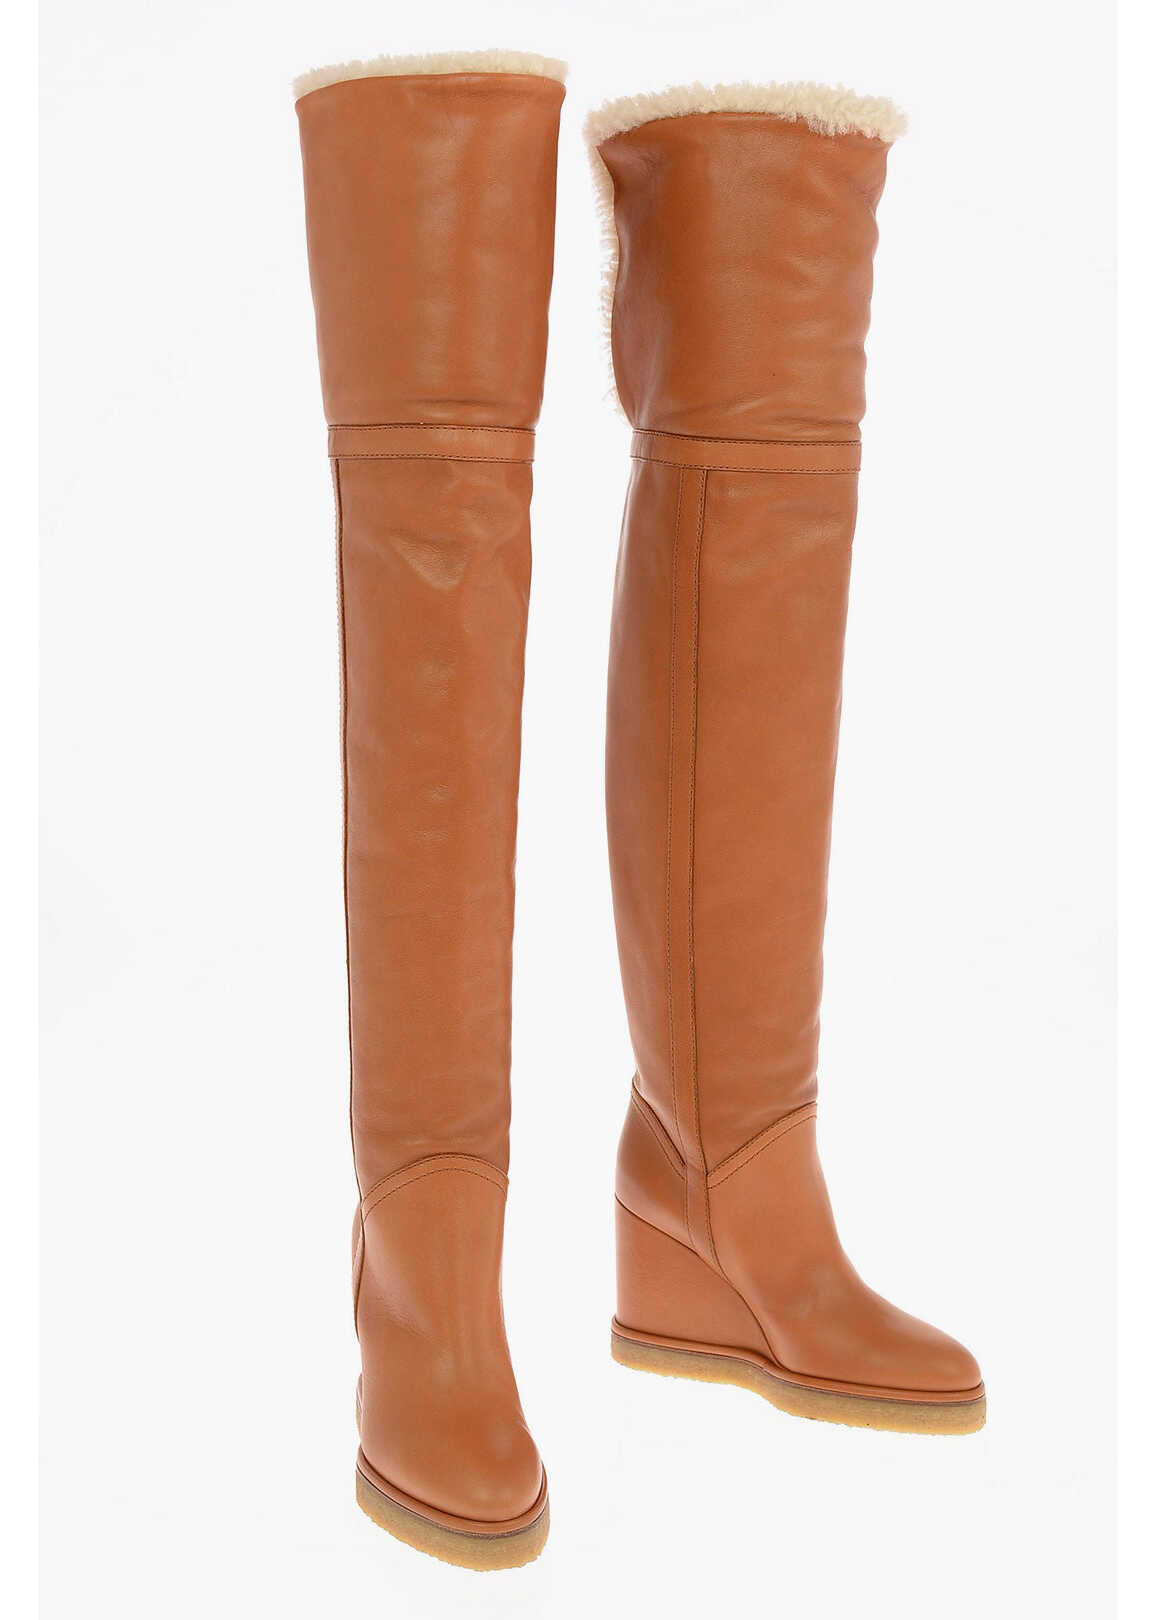 Céline Over the Knee Pull on Boots MANON with Shearling Detail 10cm BROWN imagine b-mall.ro